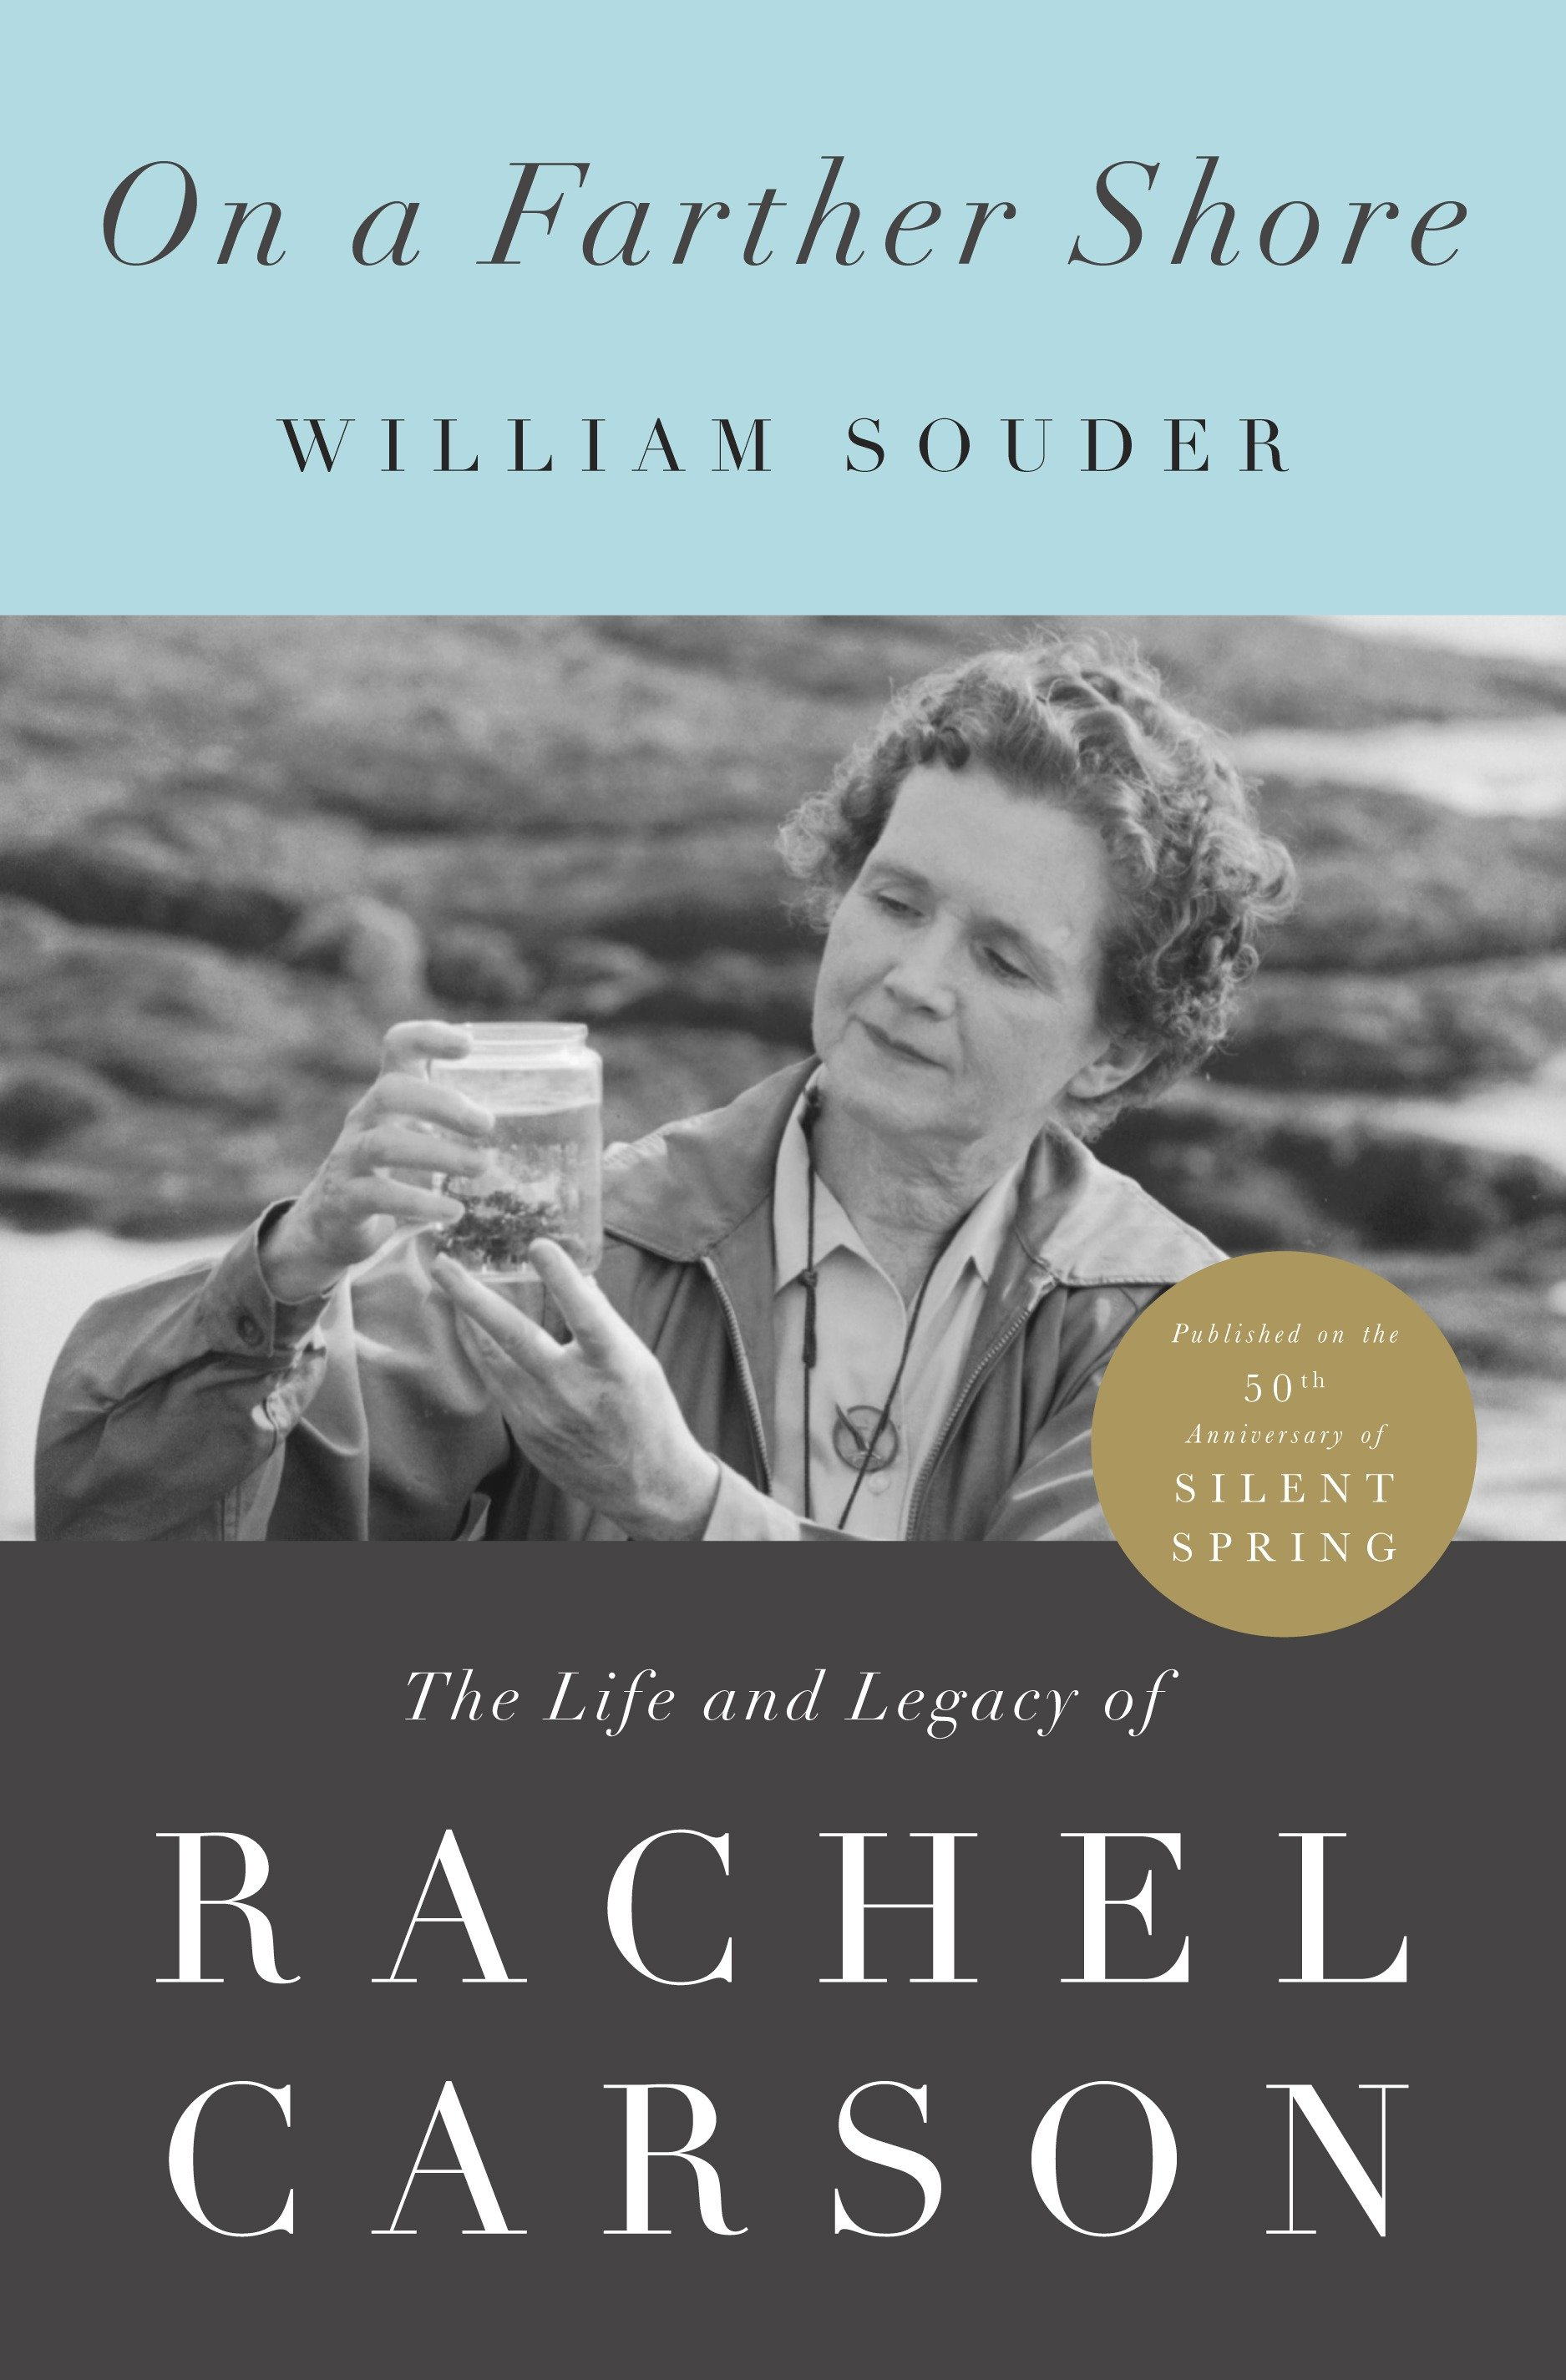 On a Farther Shore The Life and Legacy of Rachel Carson, Author of Silent Spring